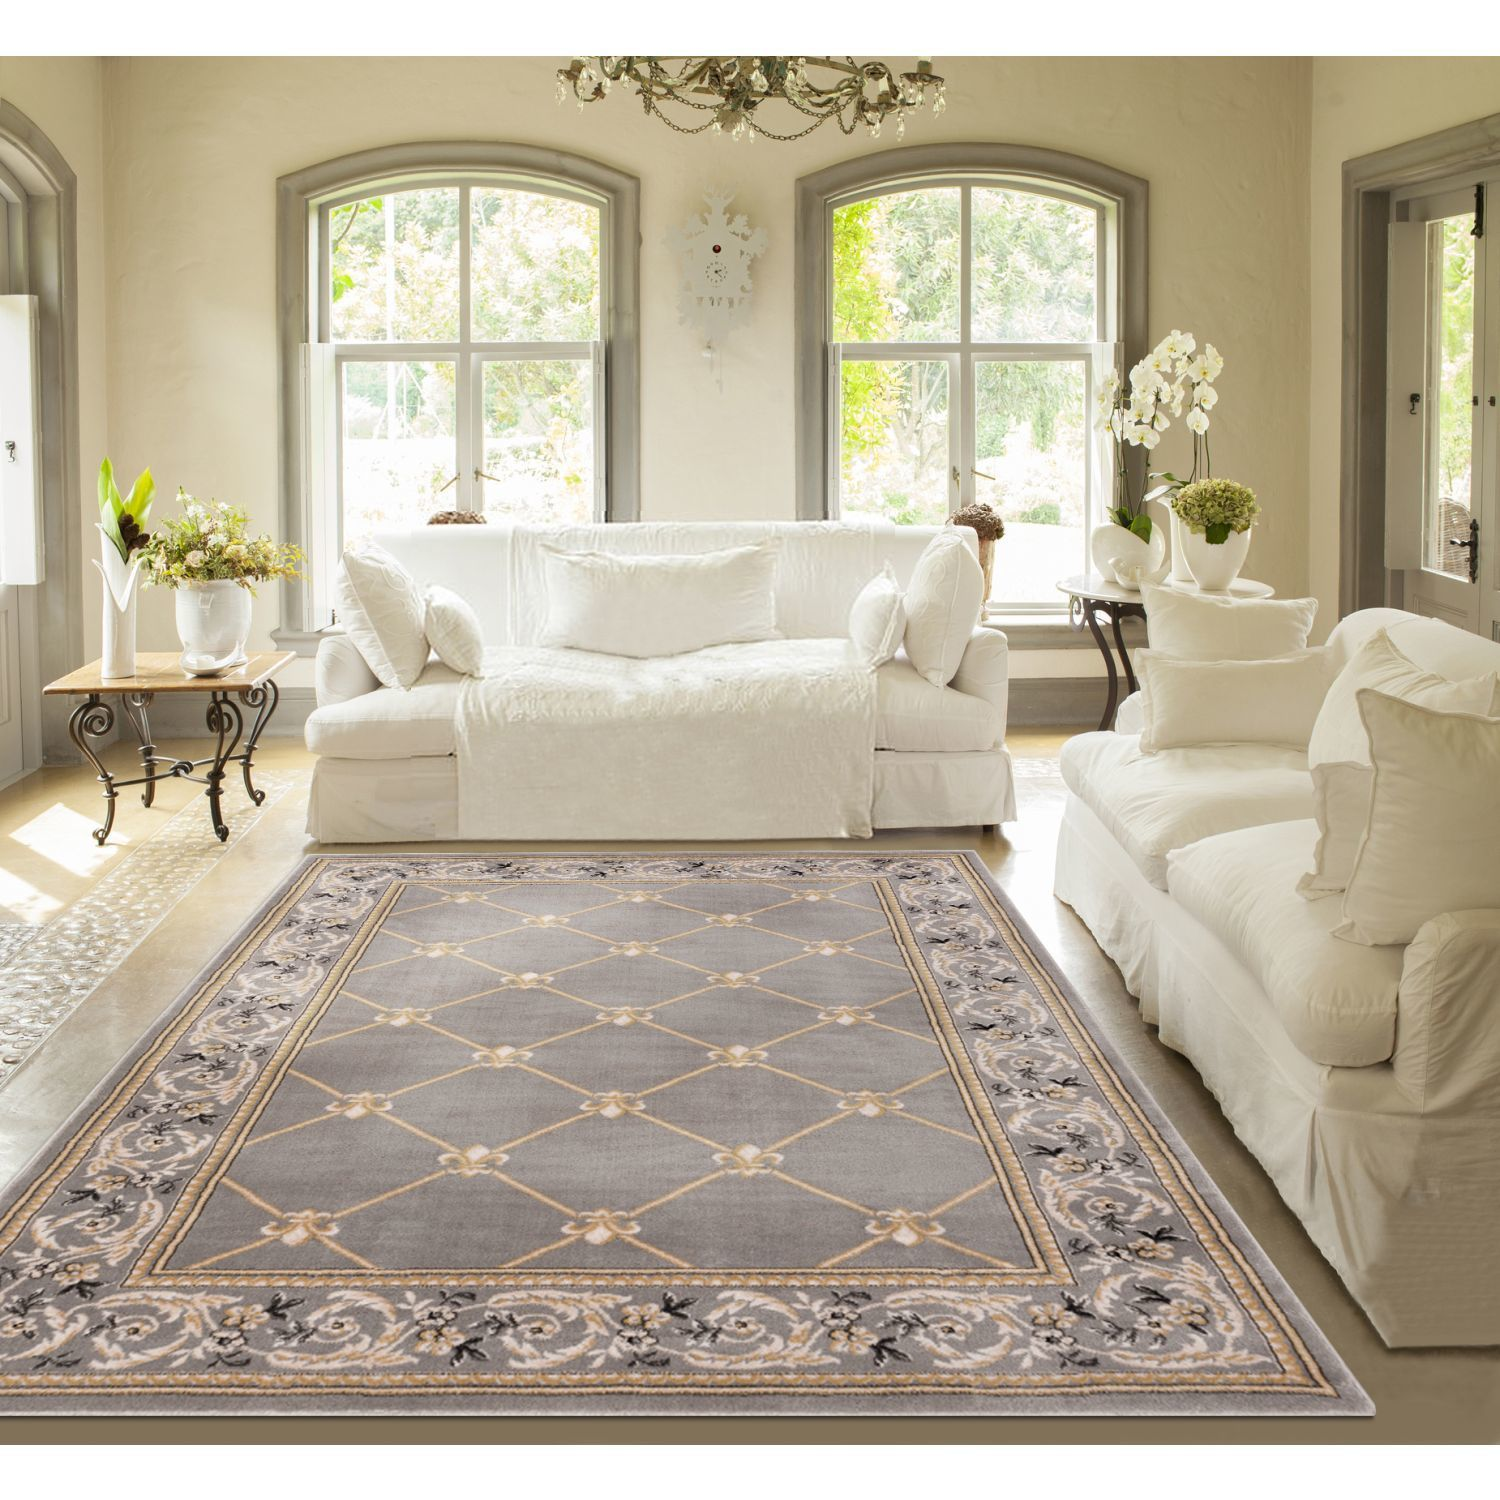 Shop Well Woven Agra Royal Trellis Mansion Area Rug - XL - Free ...